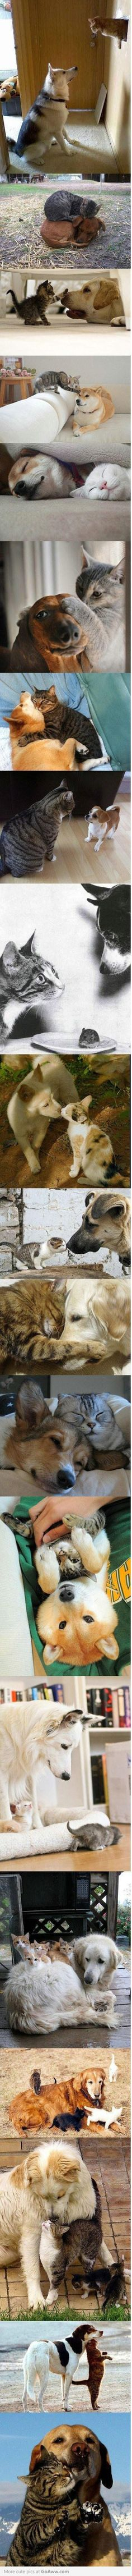 Perros & Gatos - Dogs and Cats Animals And Pets, Baby Animals, Funny Animals, Cute Animals, Wild Animals, I Love Cats, Crazy Cats, Cute Cats, Crazy Dog